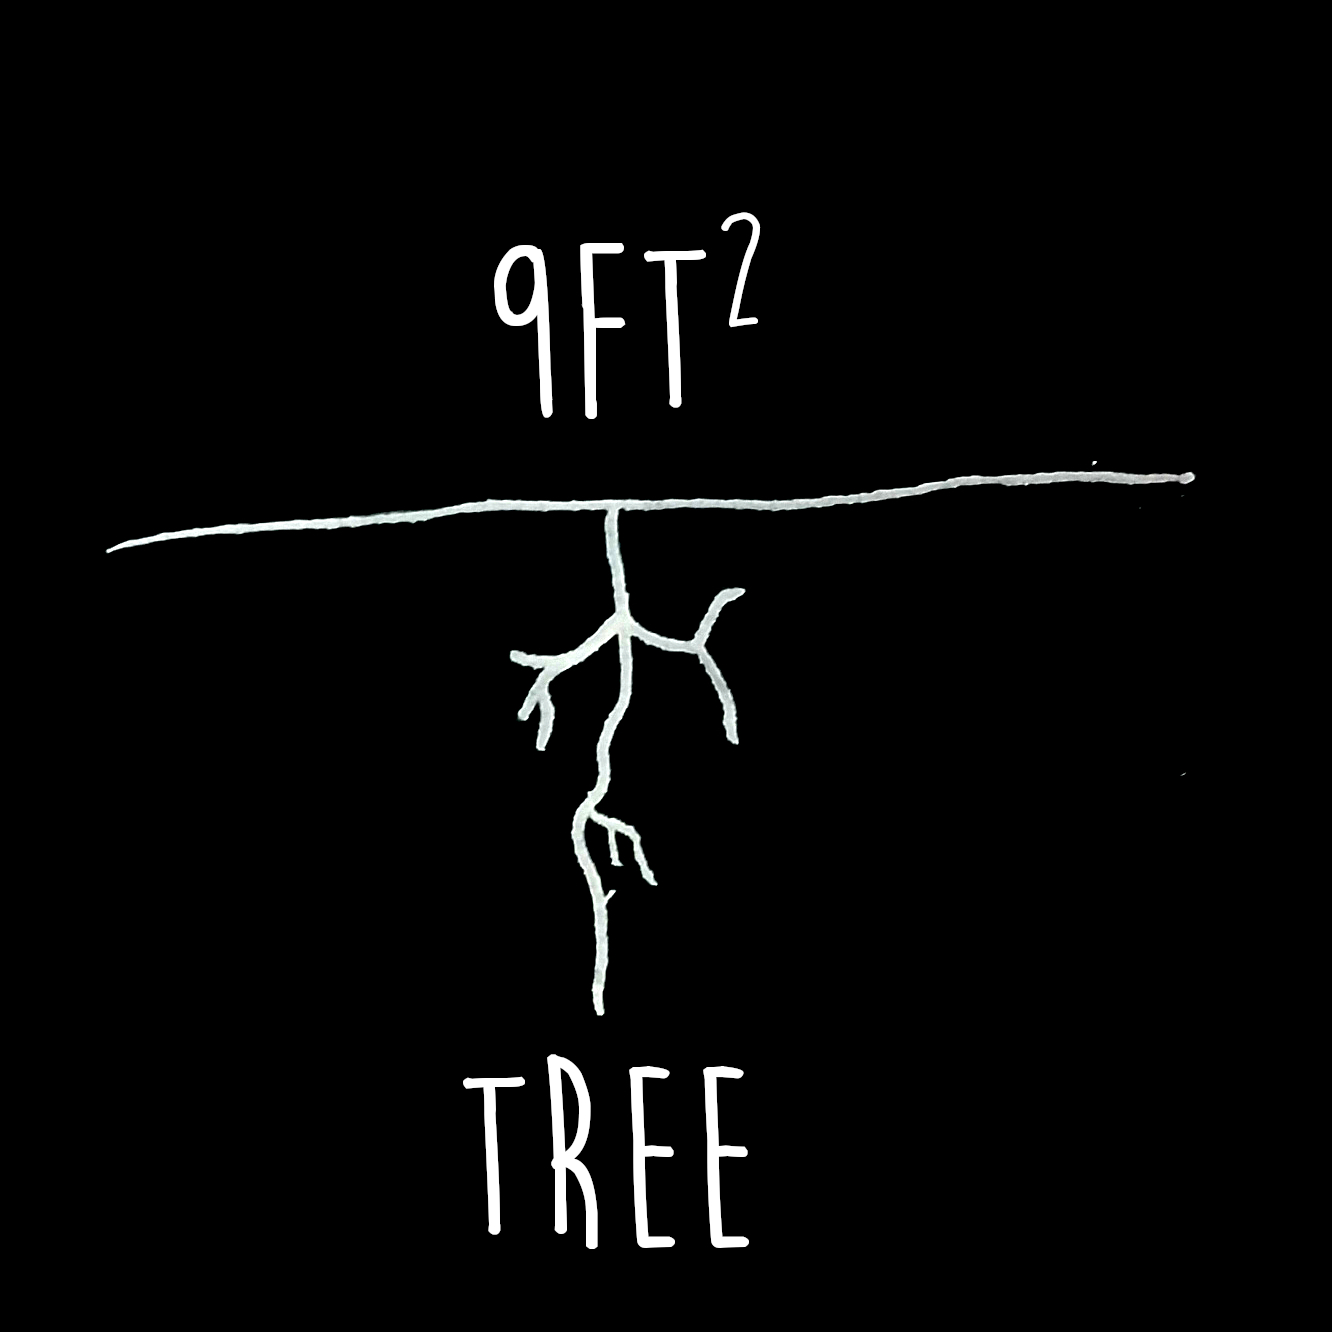 9ft²: Tree Thumbnail